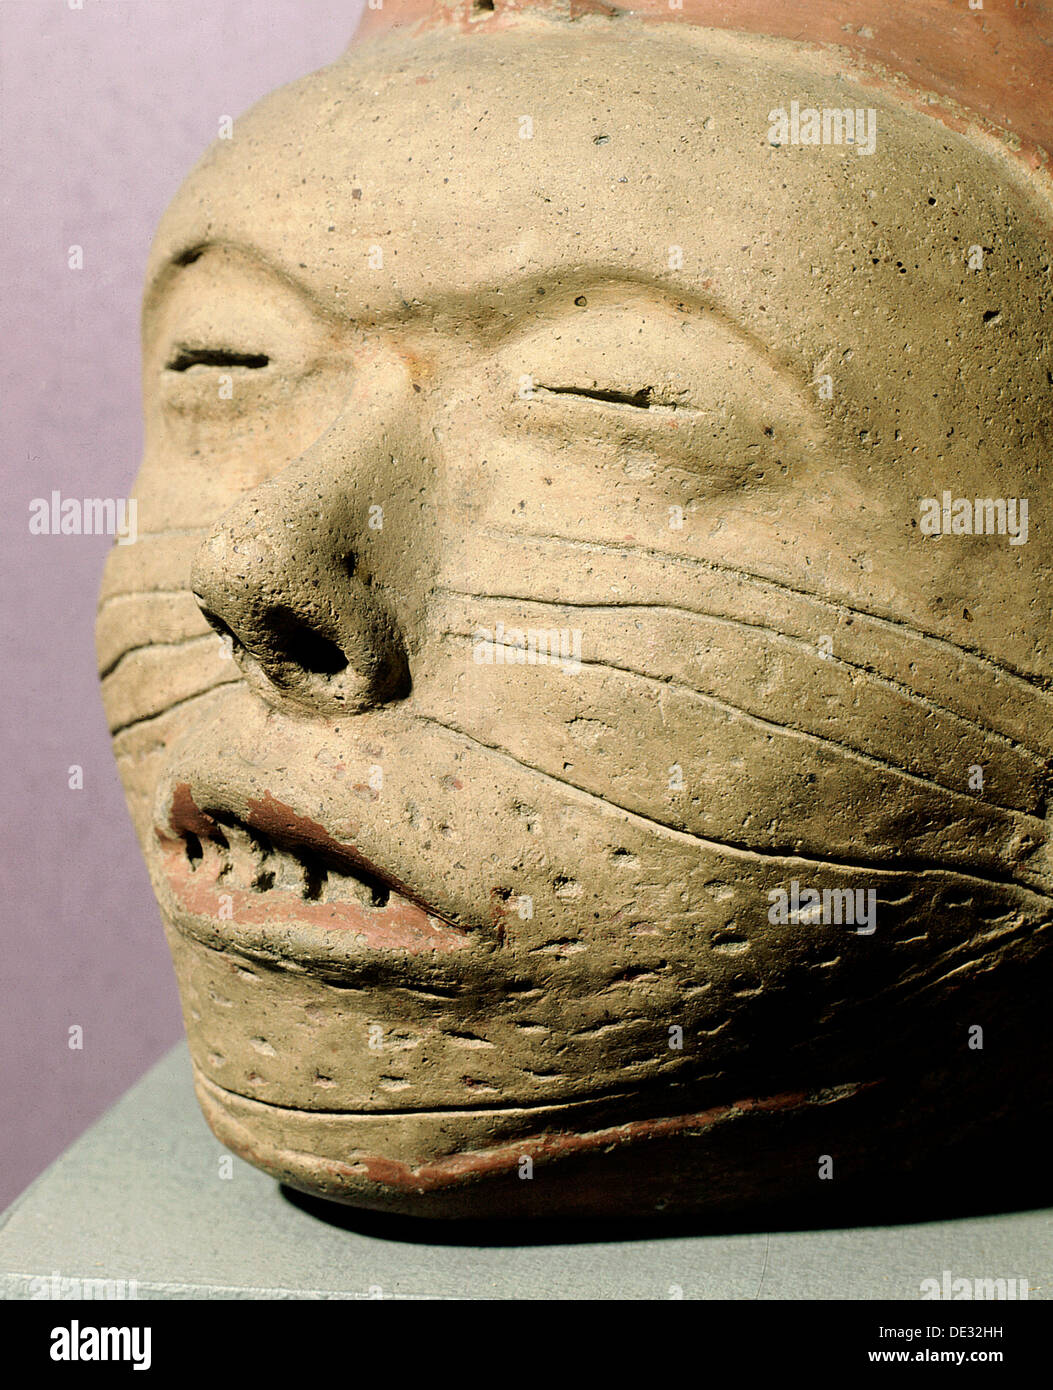 Pottery effigy-head vessel with sealed eyelids, stitched mouth and facial decorations. - Stock Image